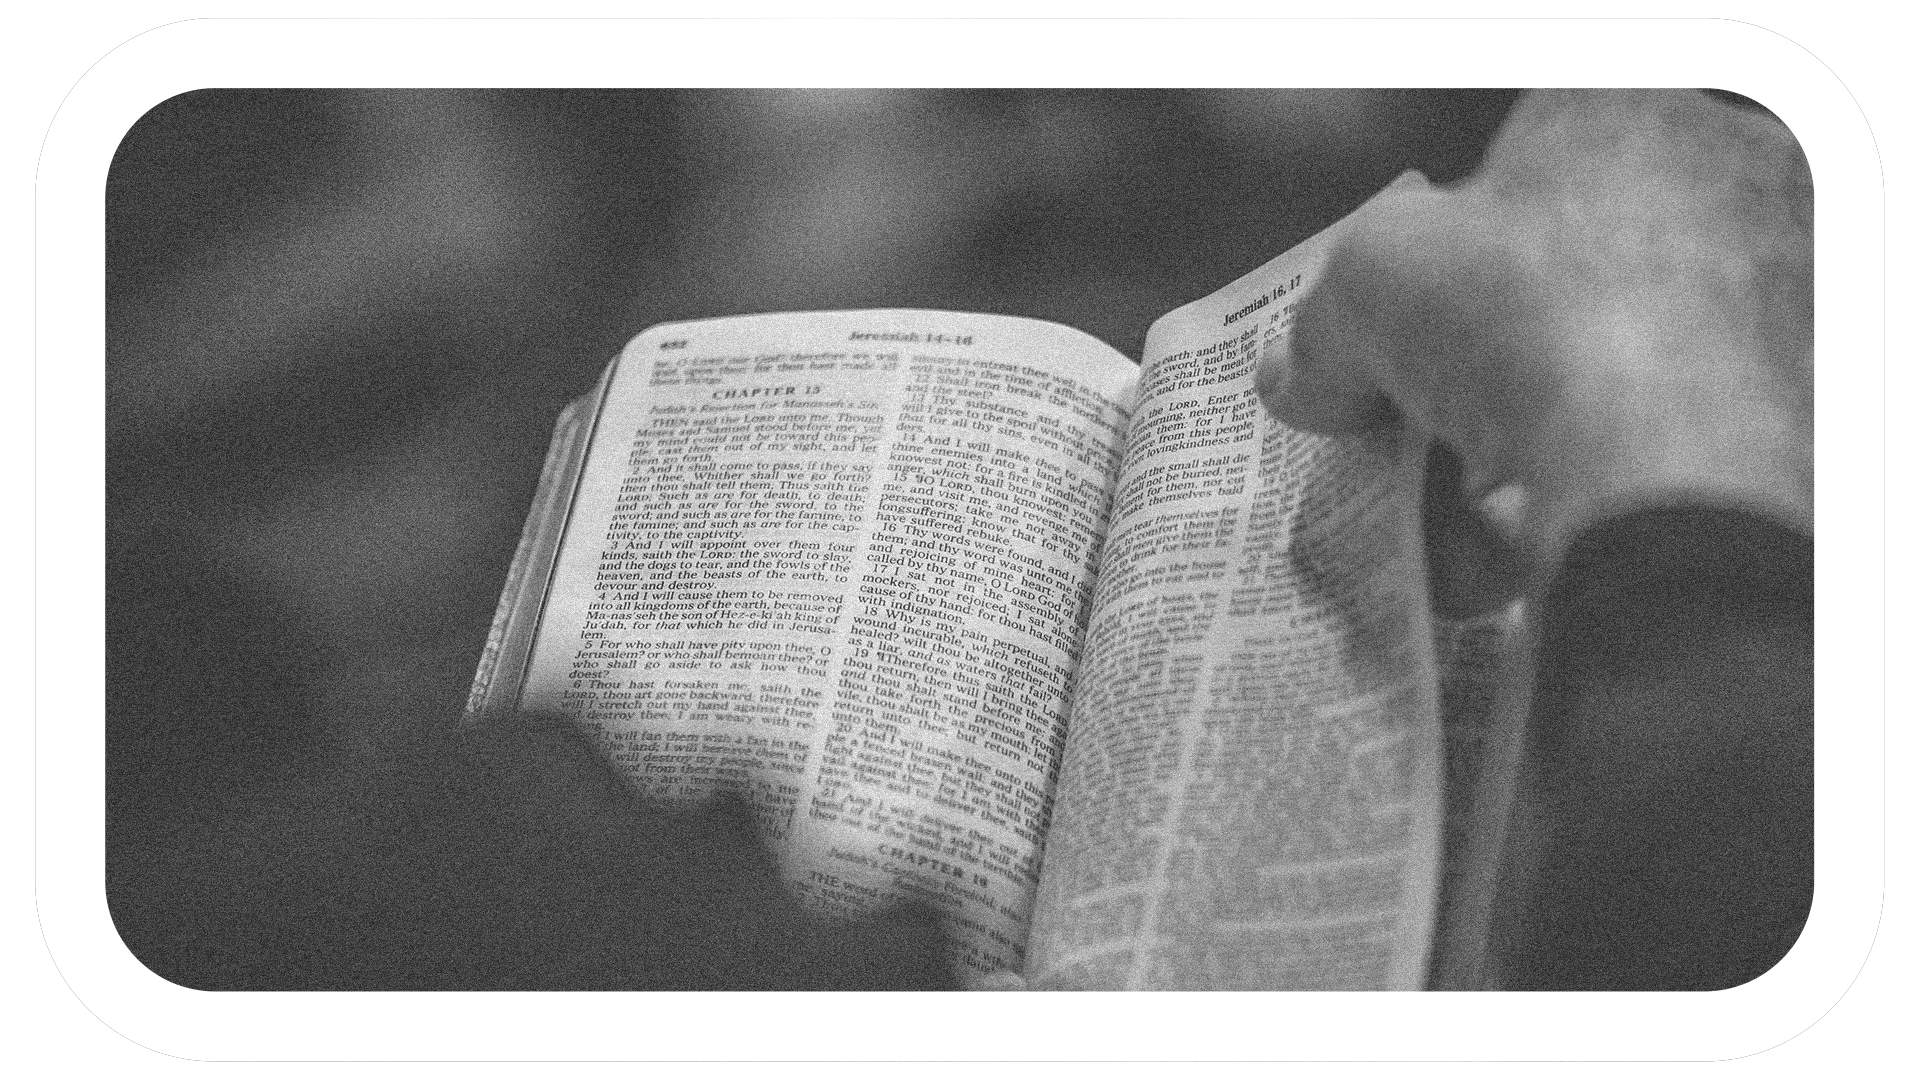 READING TOGETHER - Join us as we read through the Bible this year.